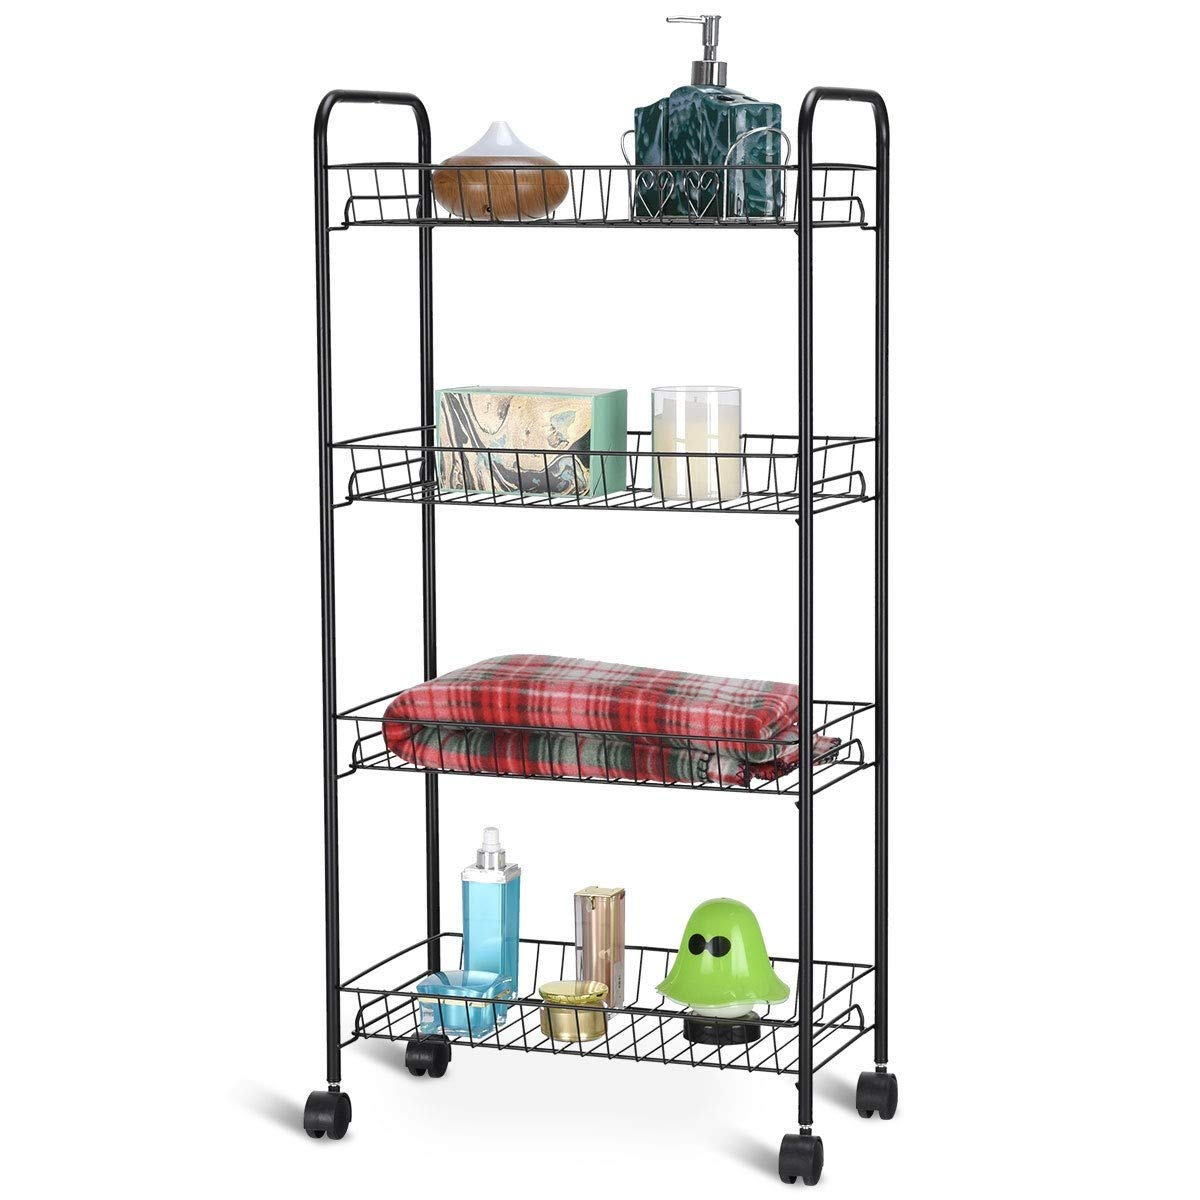 ejoypay 4 Tier Rolling Kitchen Utility Trolley with Storage Shelf Baskets